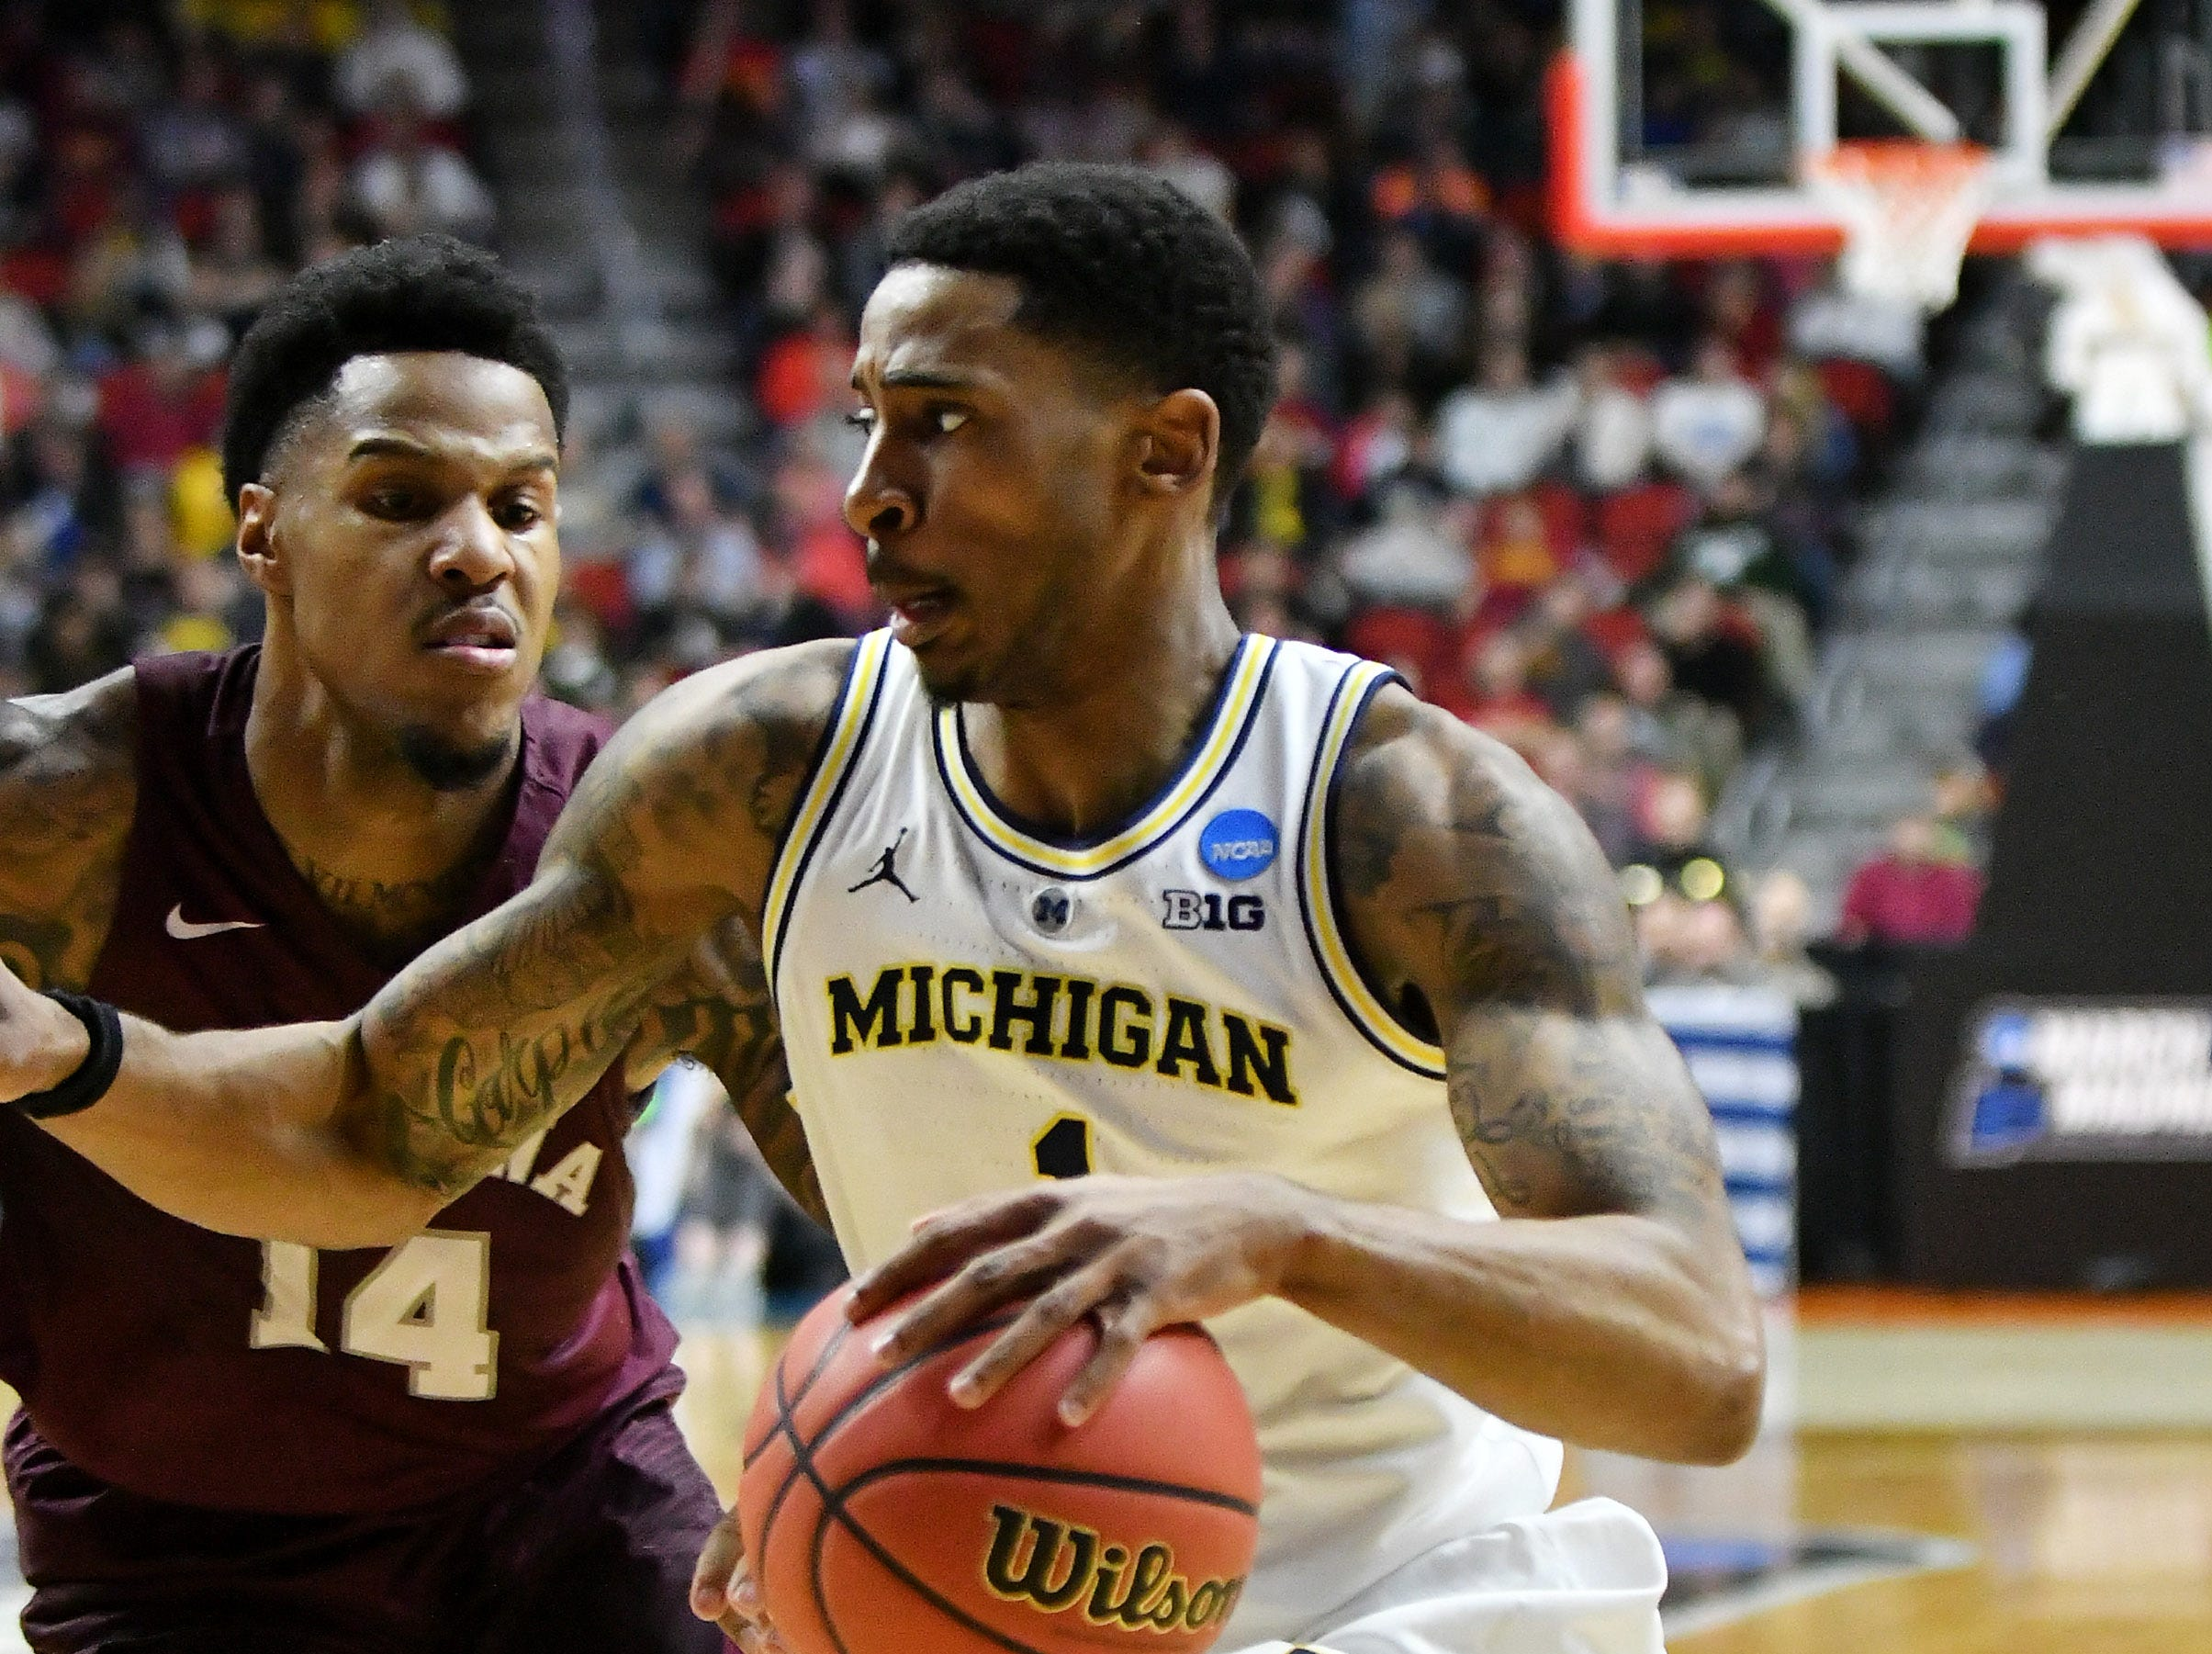 Montana guard Ahmaad Rorie (14) guards Michigan guard Charles Matthews (1) in the first half in the 74-55 win over Montana for Round 1 of the NCAA Tournament at Wells Fargo Arena in Des Moines, Iowa on March. 21, 2019.  Michigan wins, 74-55.